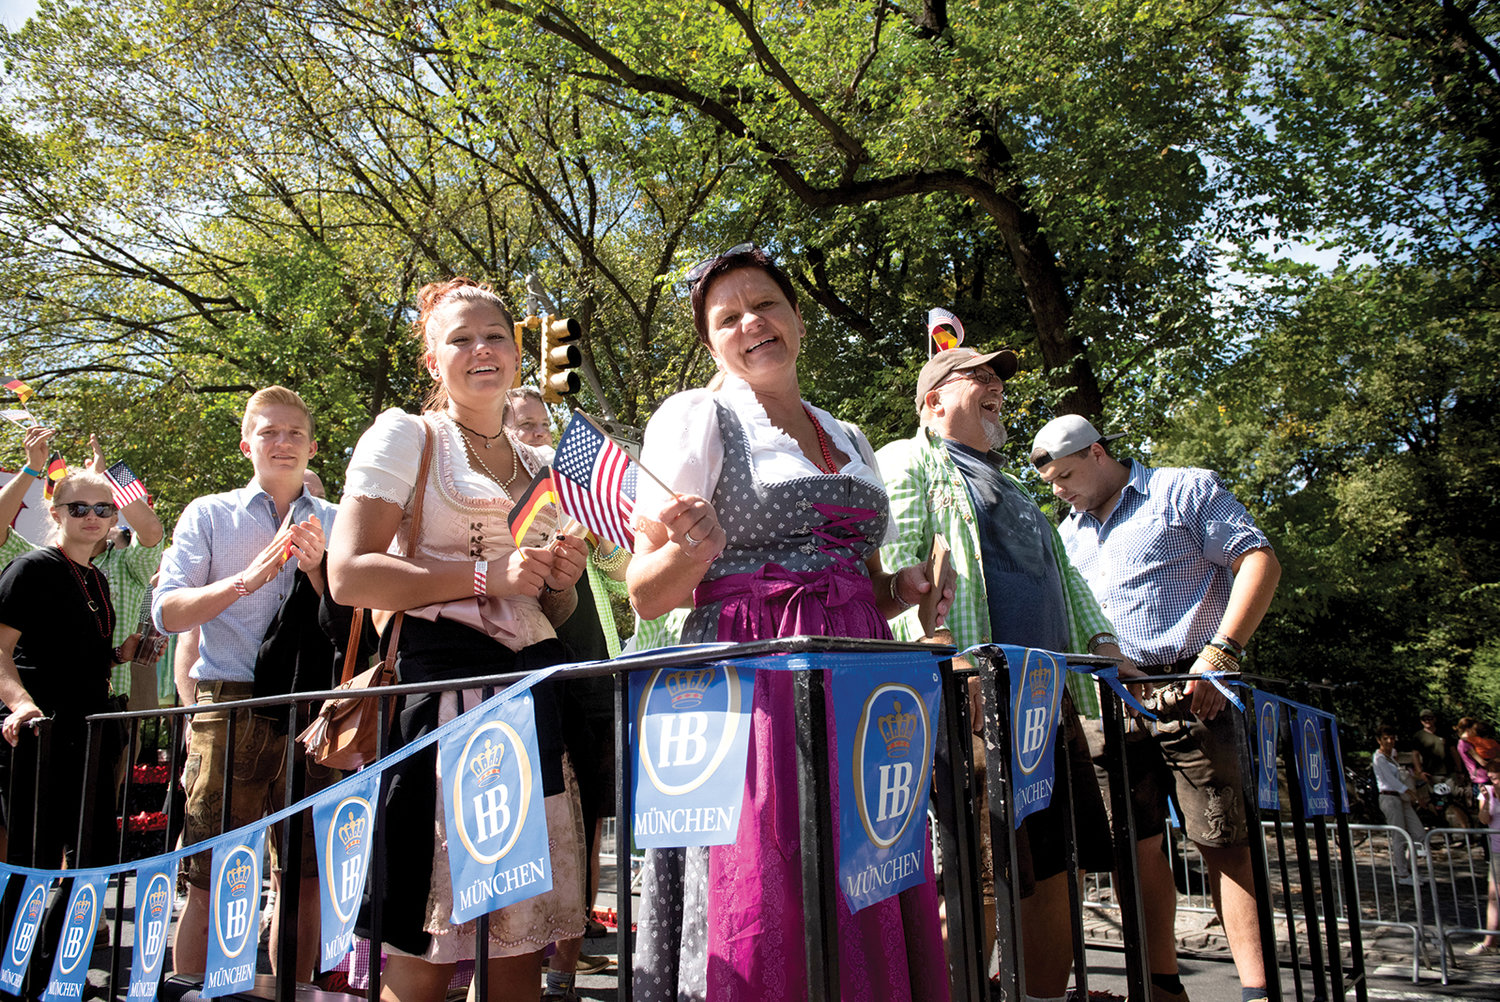 Two women dressed in a dirndl, the ruffled apron dress traditionally worn by German women, stand on a float waving flags of the United States and Germany.